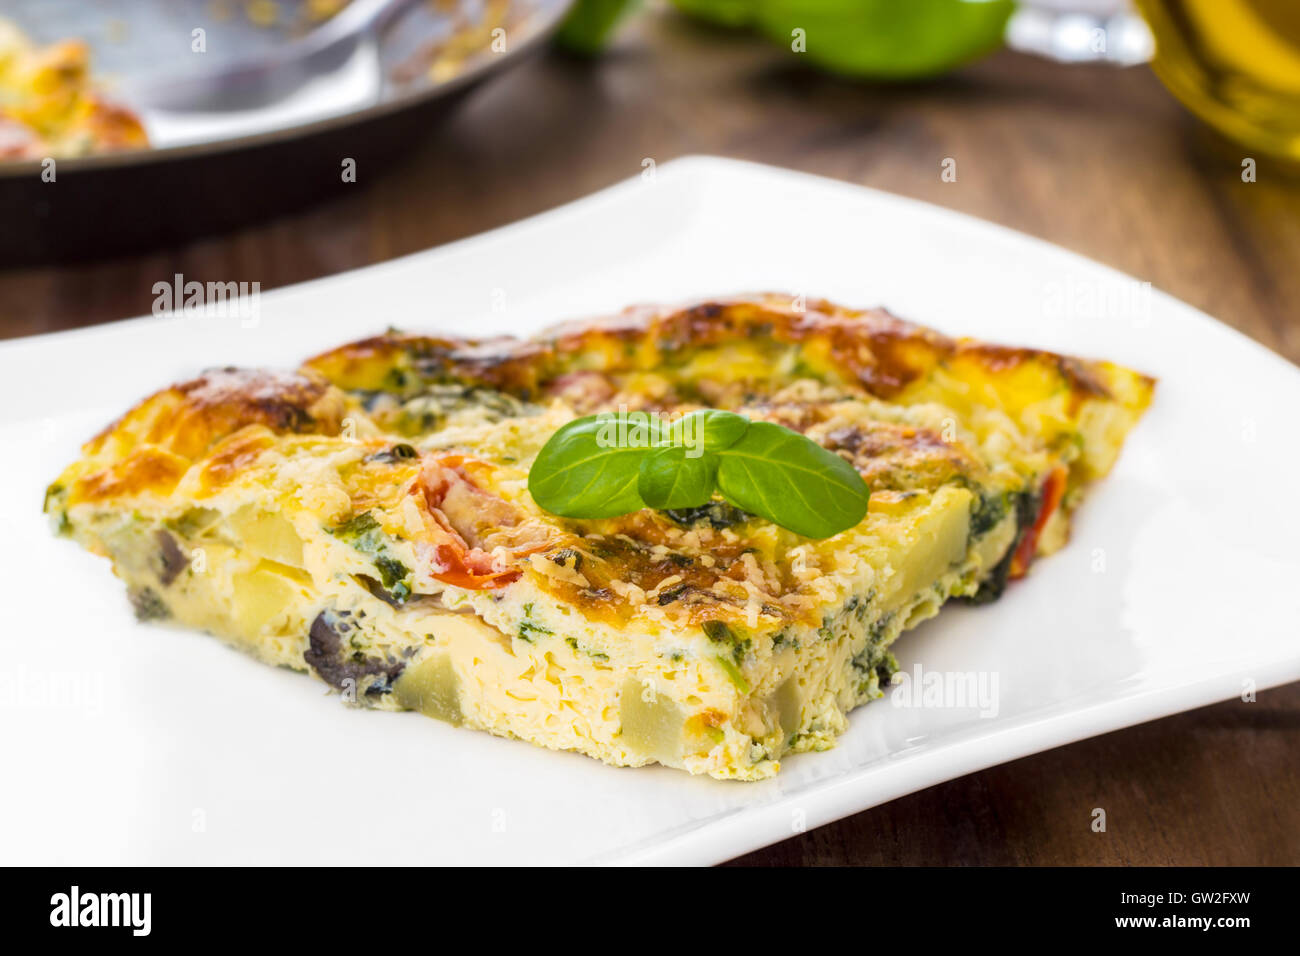 Italian frittata with vegetables and parmesan cheese - Stock Image